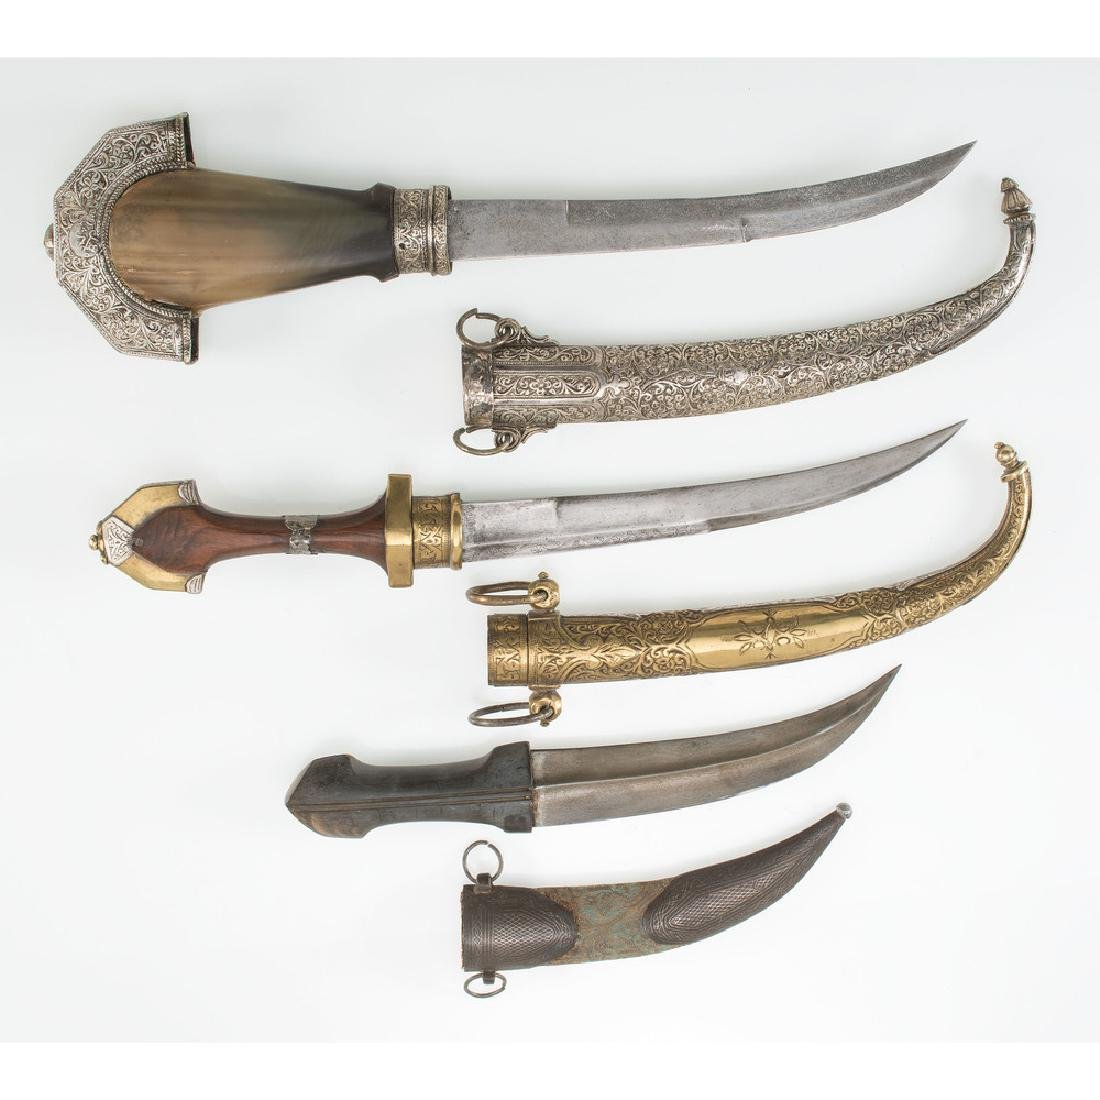 3 Curved Blade Moroccan Daggers